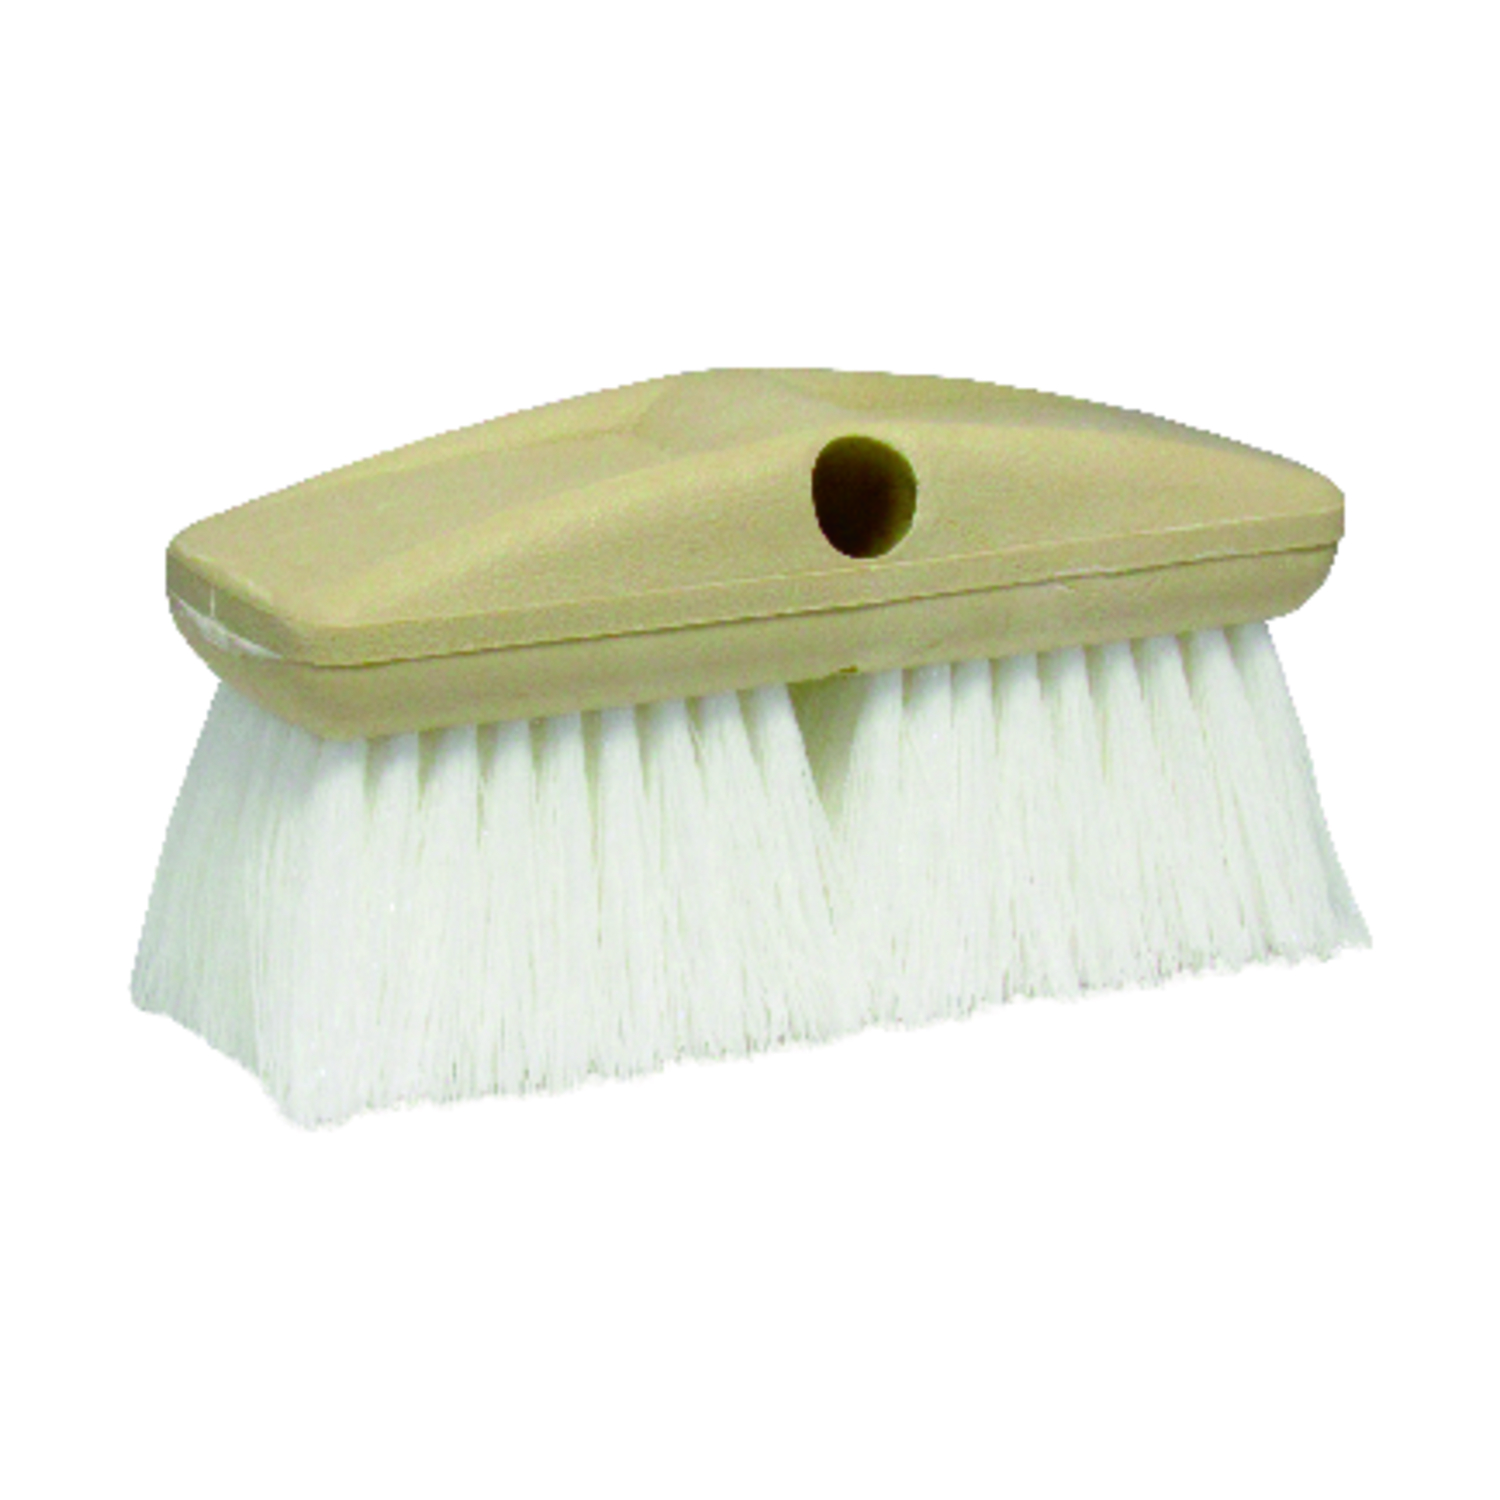 Star Brite  1.3 in. Scrub Brush